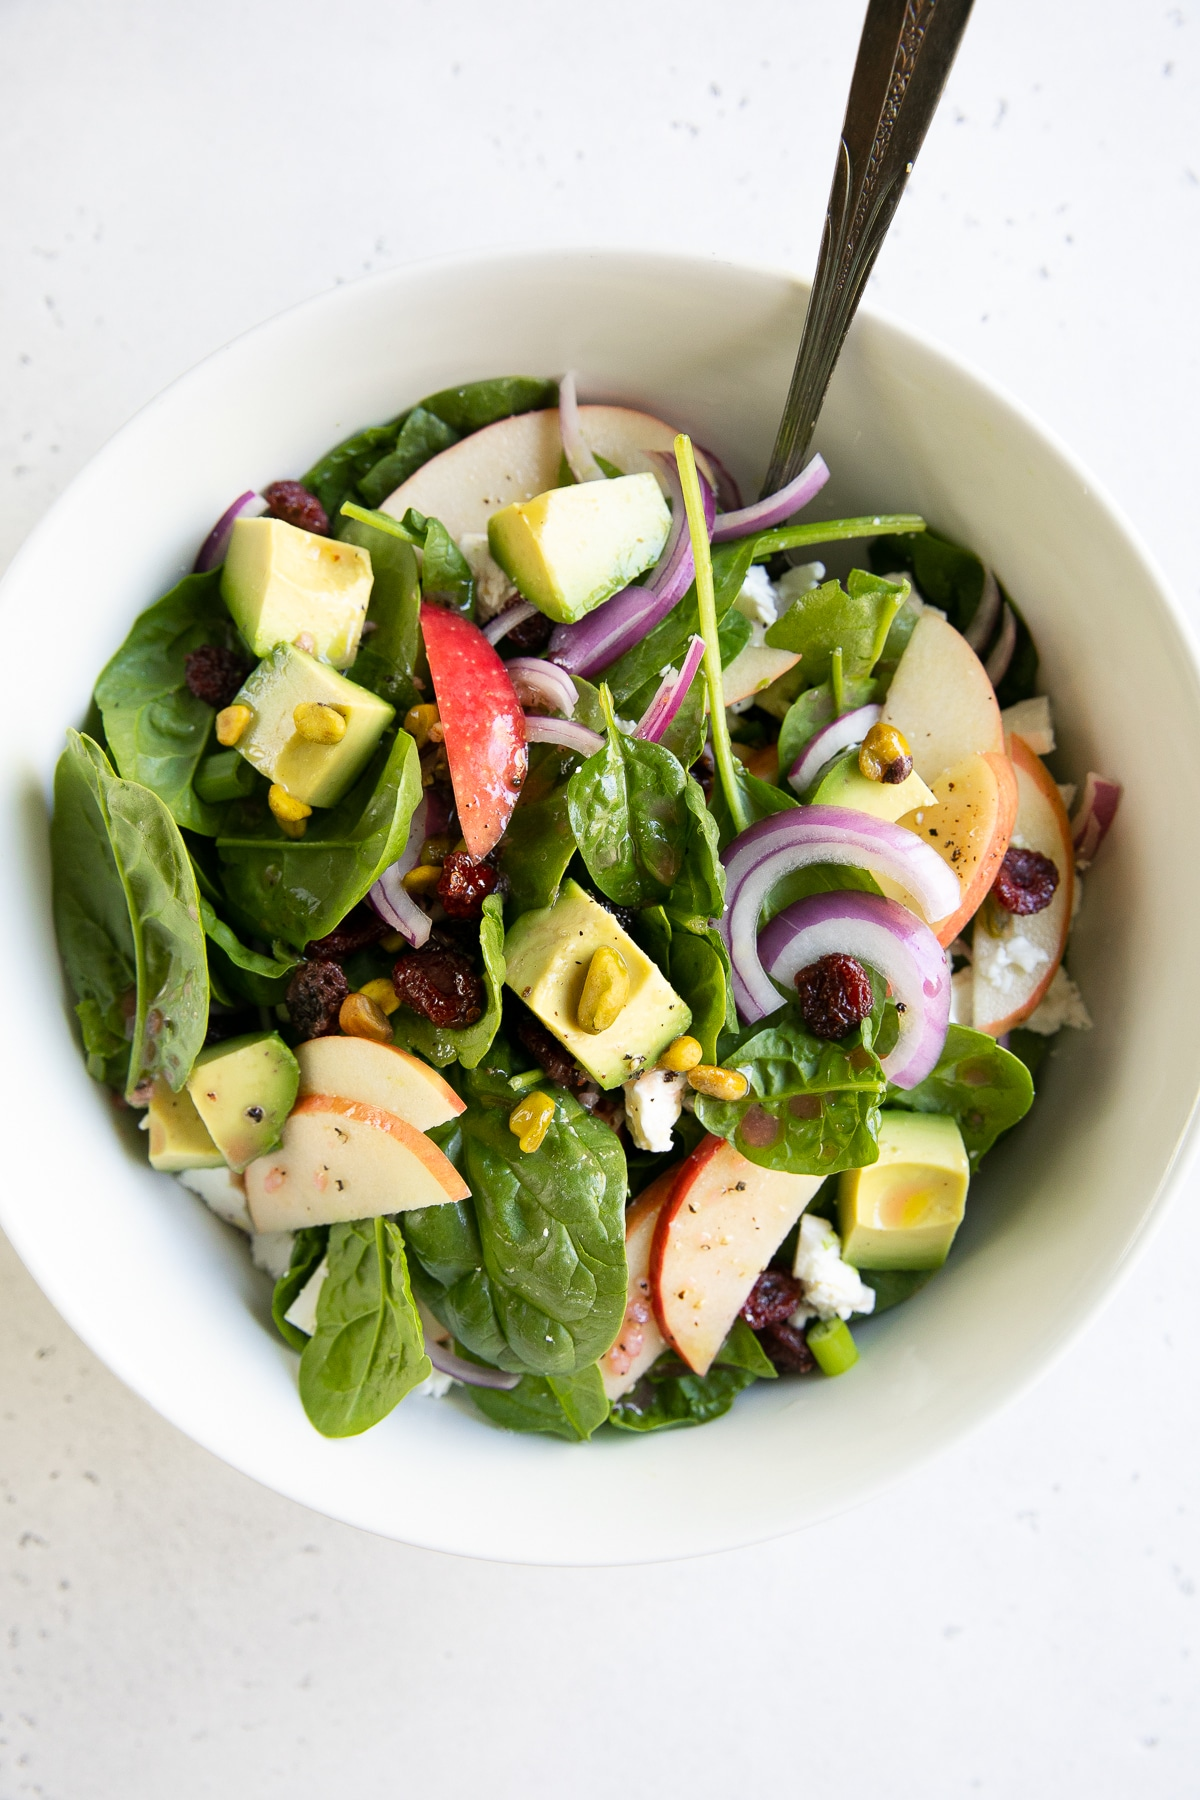 Easy Spinach Salad Recipe With Apples The Forked Spoon